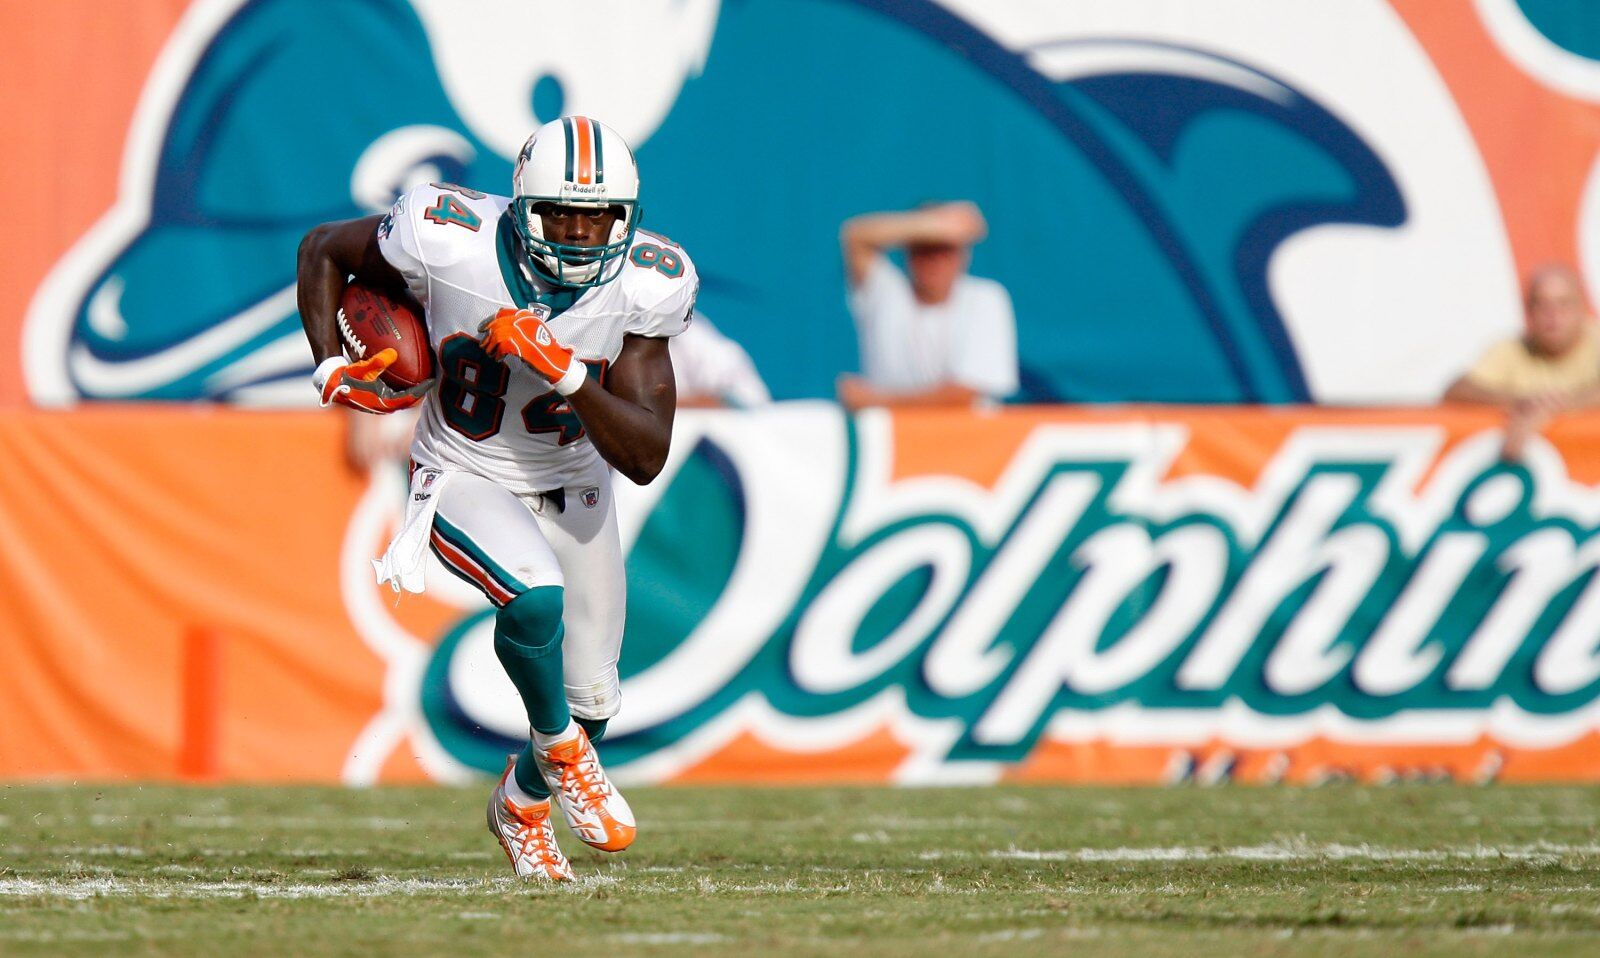 Dolphin Miami | Miami Dolphins Receiver Had 15 Catches In One Game